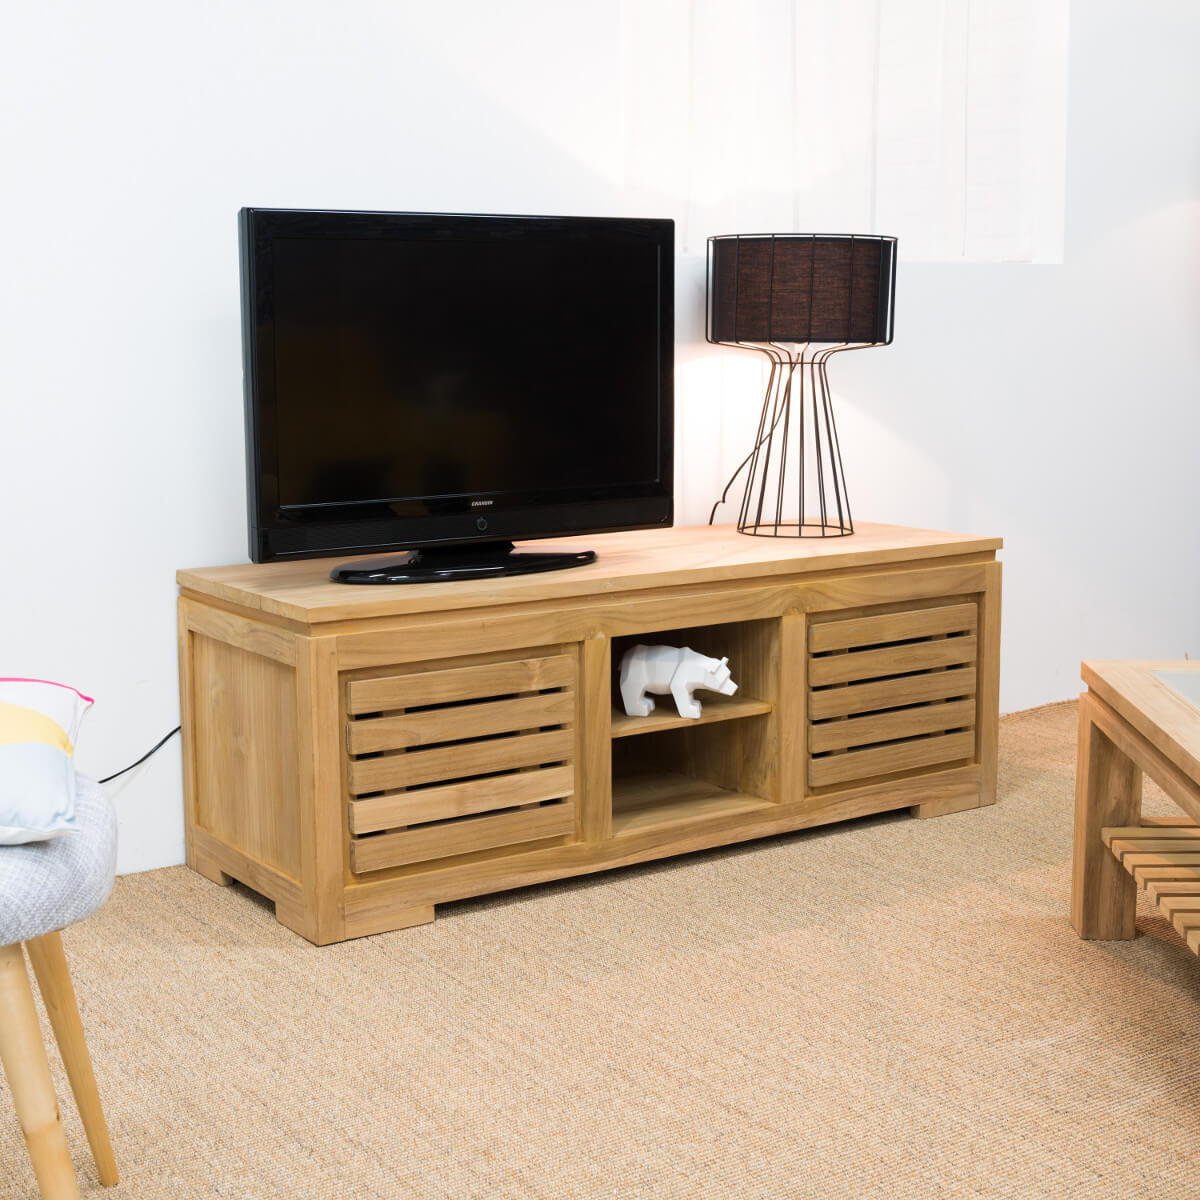 Colonne Meubles Tv Bois Massif - Meuble Tv Teck Meuble Tv Bois Naturel Rectangle Zen 140 Cm[mjhdah]http://rescuehistorical.com/wp-content/uploads/2018/03/meuble-tv-moderne-meublle-pour-accran-plat-taclac-avec-colonne-contemporain-led-mural.jpg